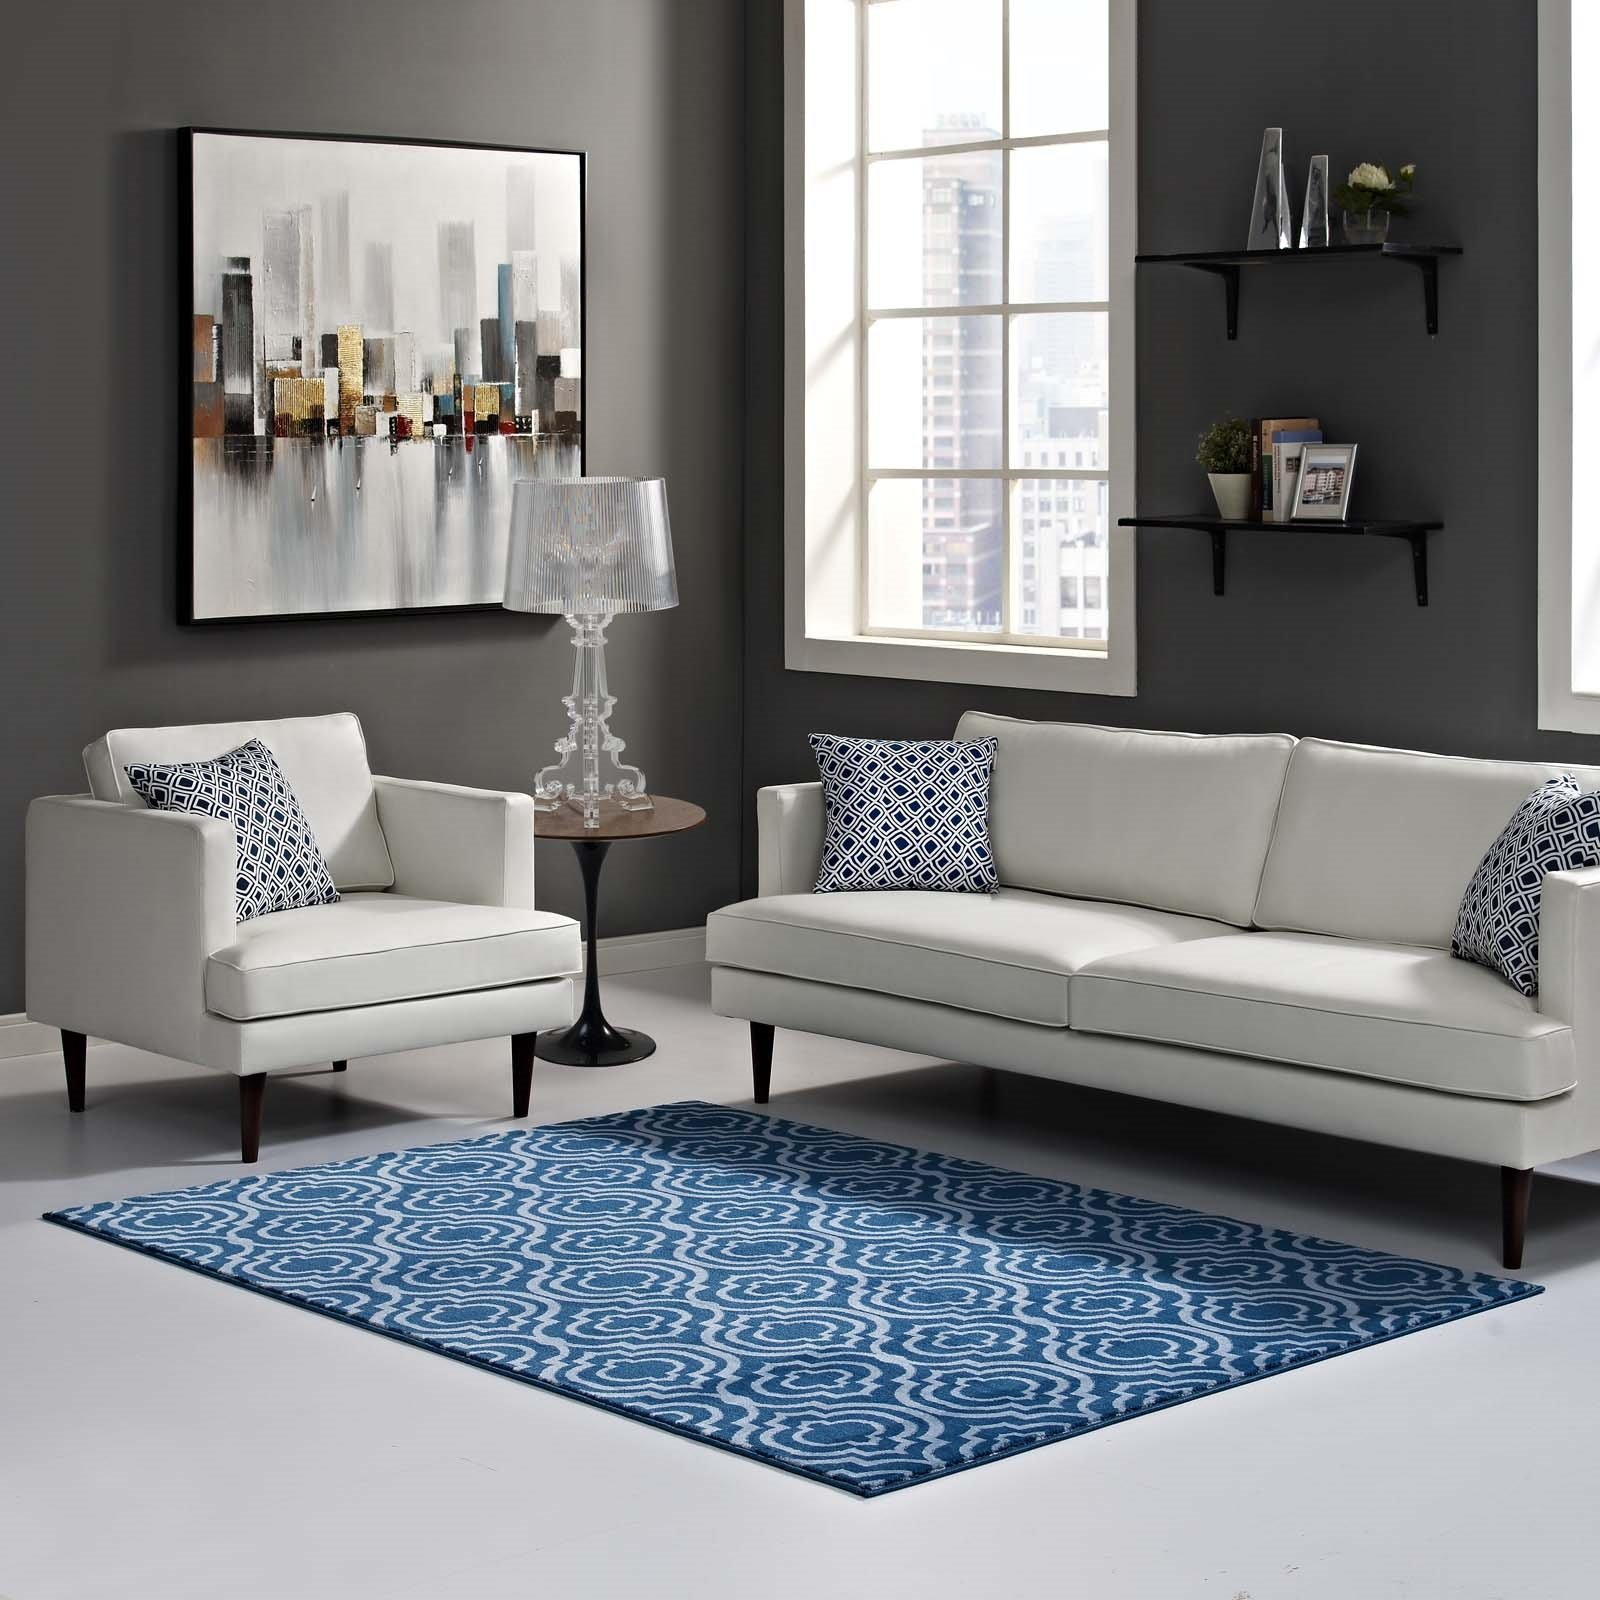 Frame Transitional Moroccan Trellis 8x10 Area Rug in Moroccan Blue amd Light Blue Product Image